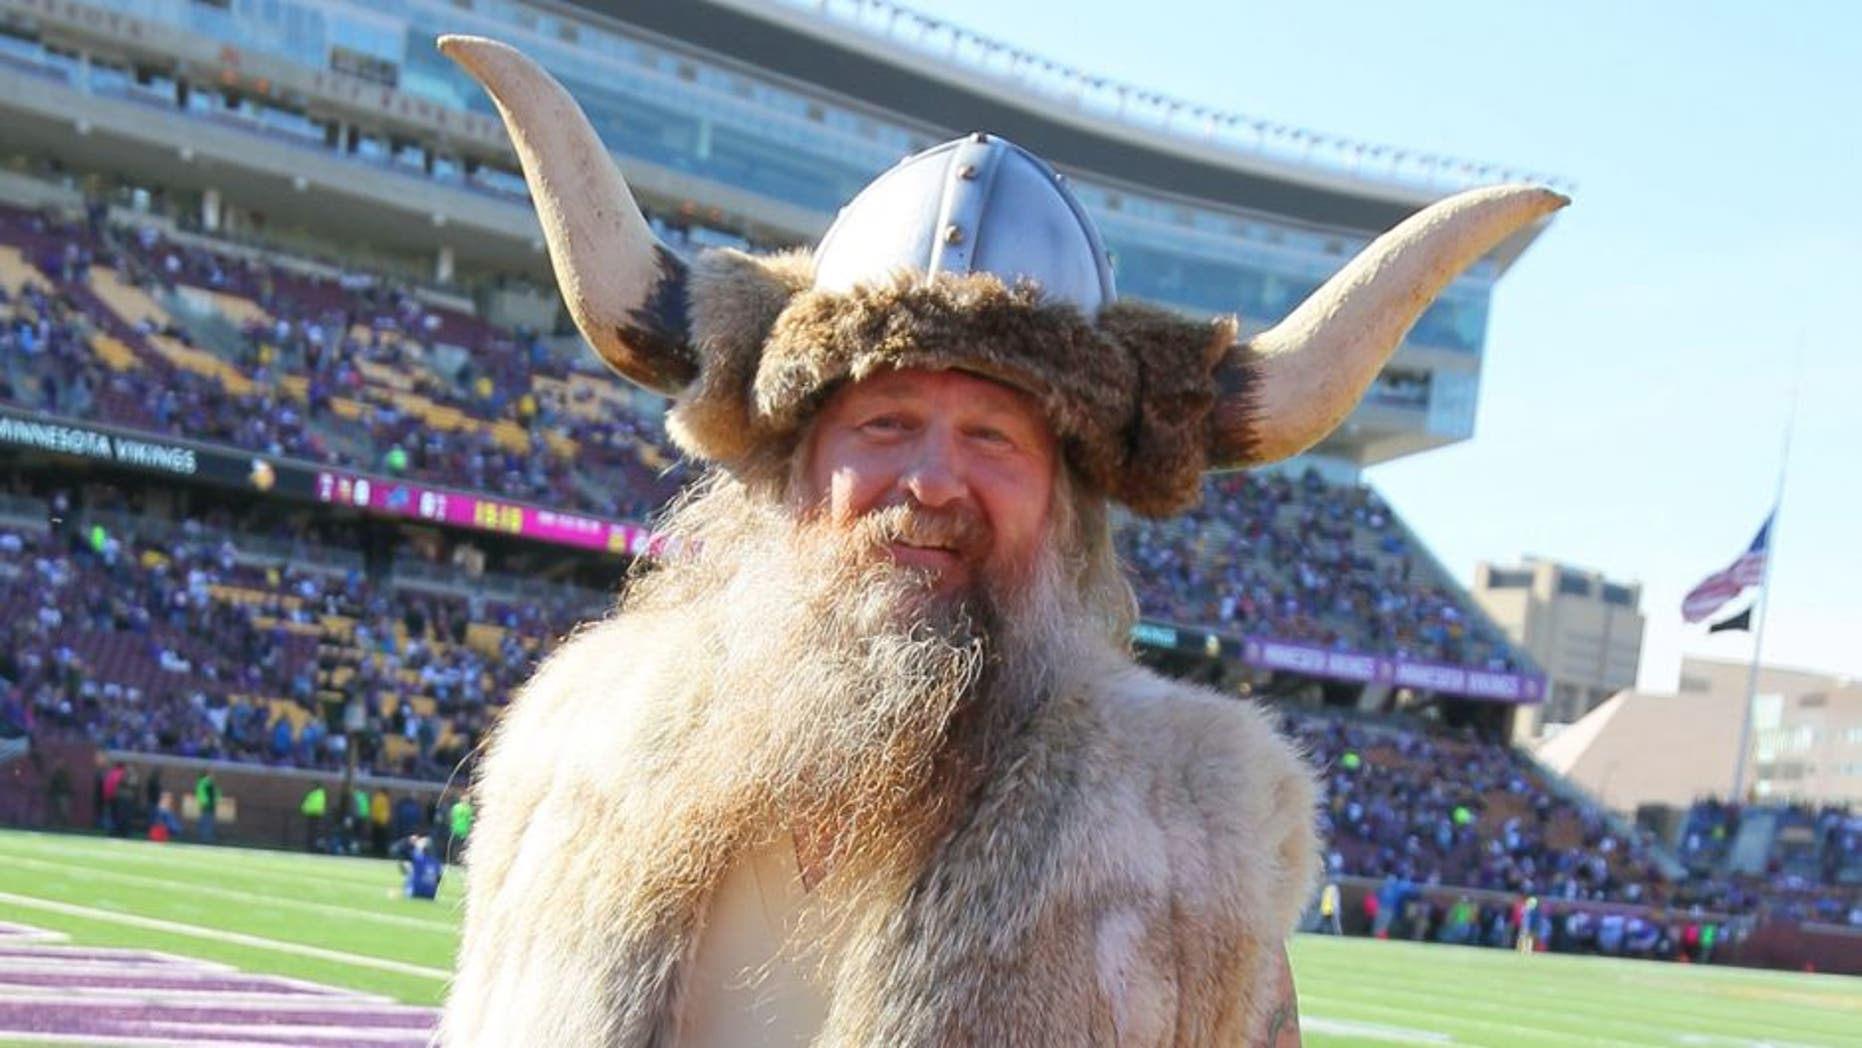 MINNEAPOLIS, MN - OCTOBER 12: Minnesota Vikings mascot Ragnar poses on the field before the game against the Detroit Lions on October 12, 2014 at TCF Bank Stadium in Minneapolis, Minnesota. (Photo by Adam Bettcher/Getty Images)